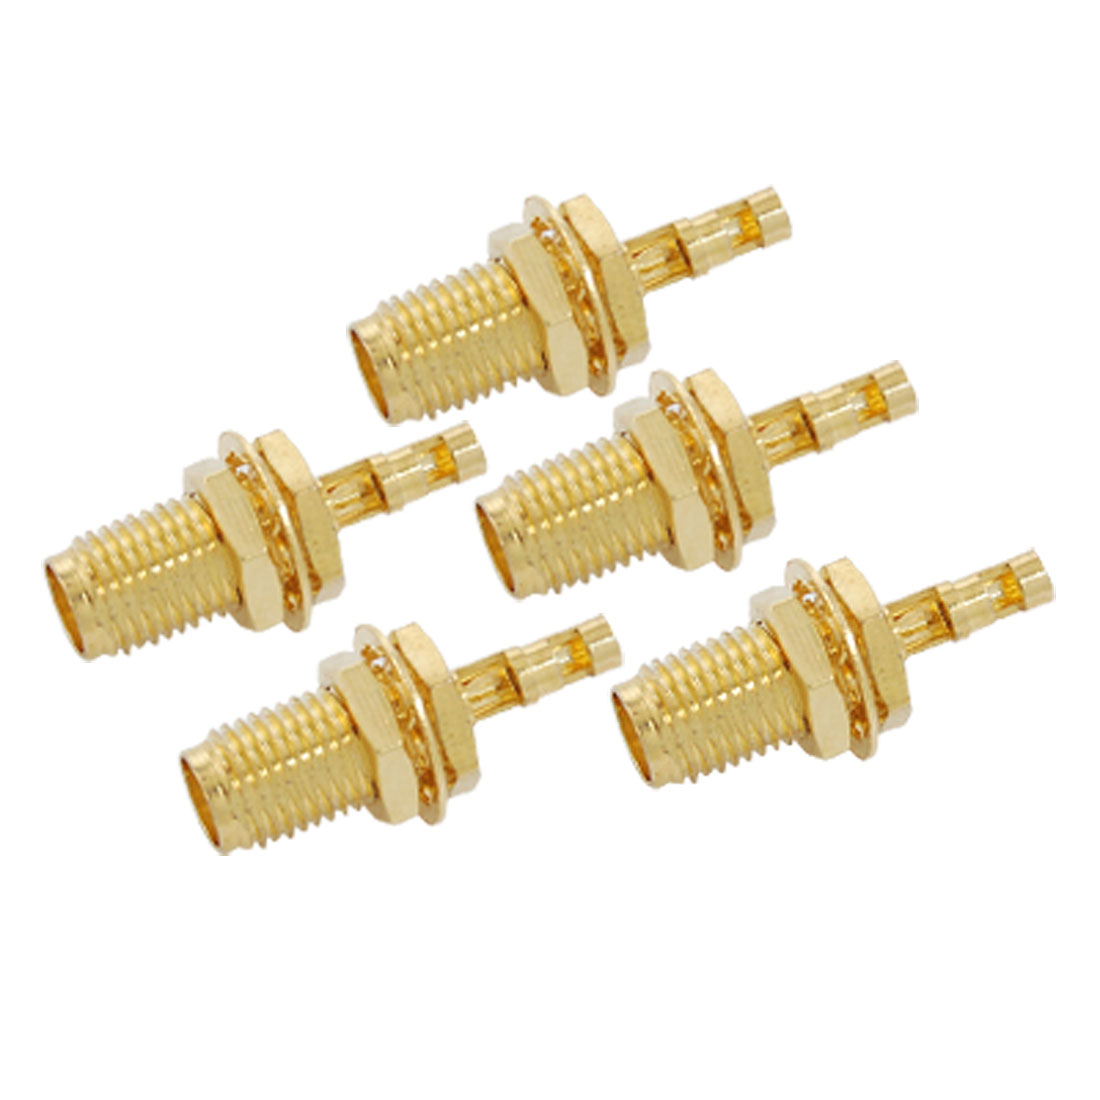 5pcs-Double-Window-SMA-Female-Nut-Bulkhead-Crimp-RG174-RG316-LMR100-RF-Connector